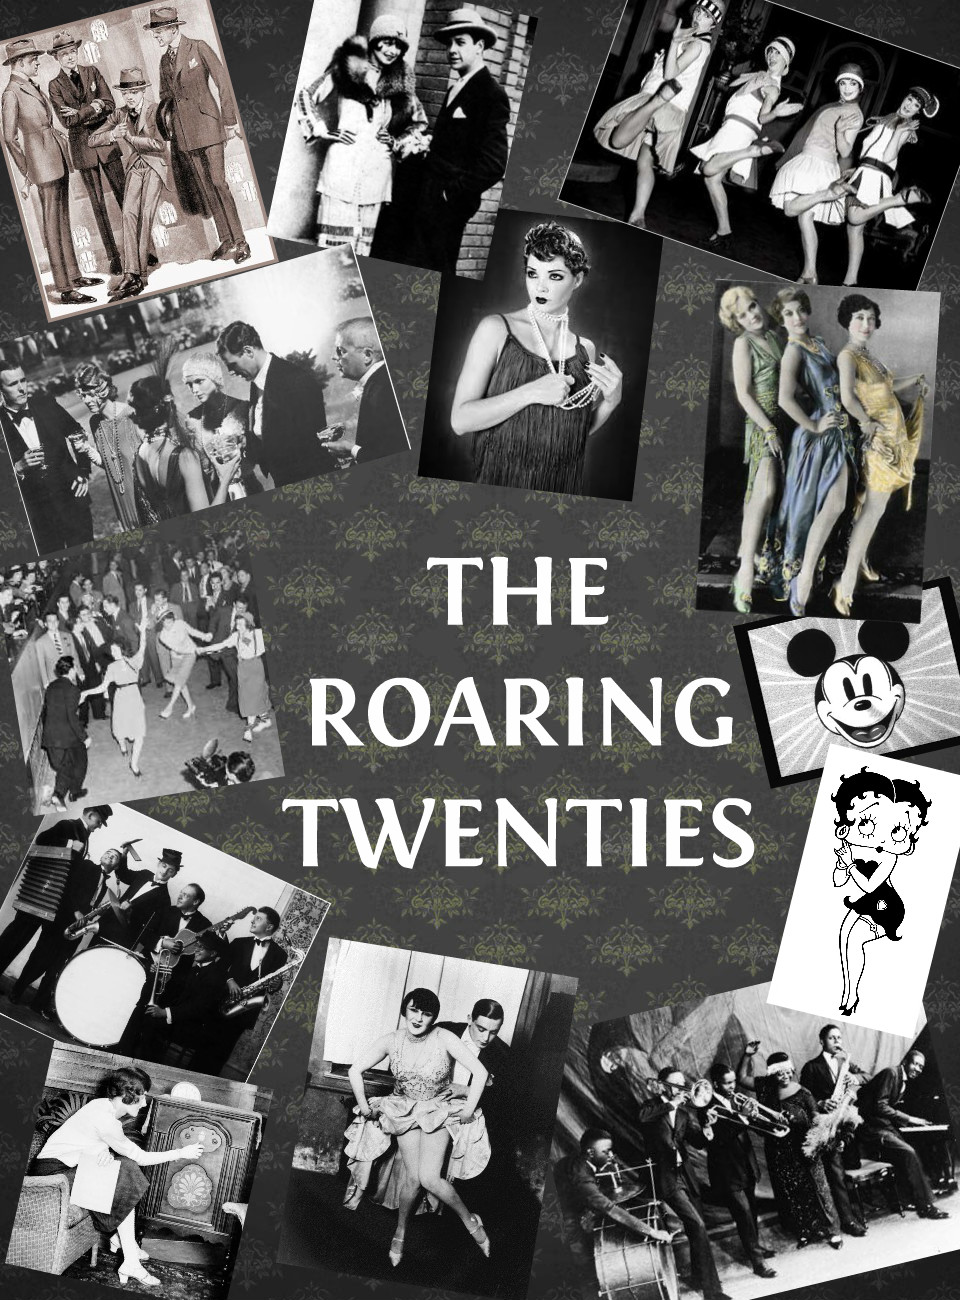 roaring 20s notes (2-cd set) the 1920s was the jazz age, when white americans discovered the  syncopated rhythm that african-american musicians had been improvising for.